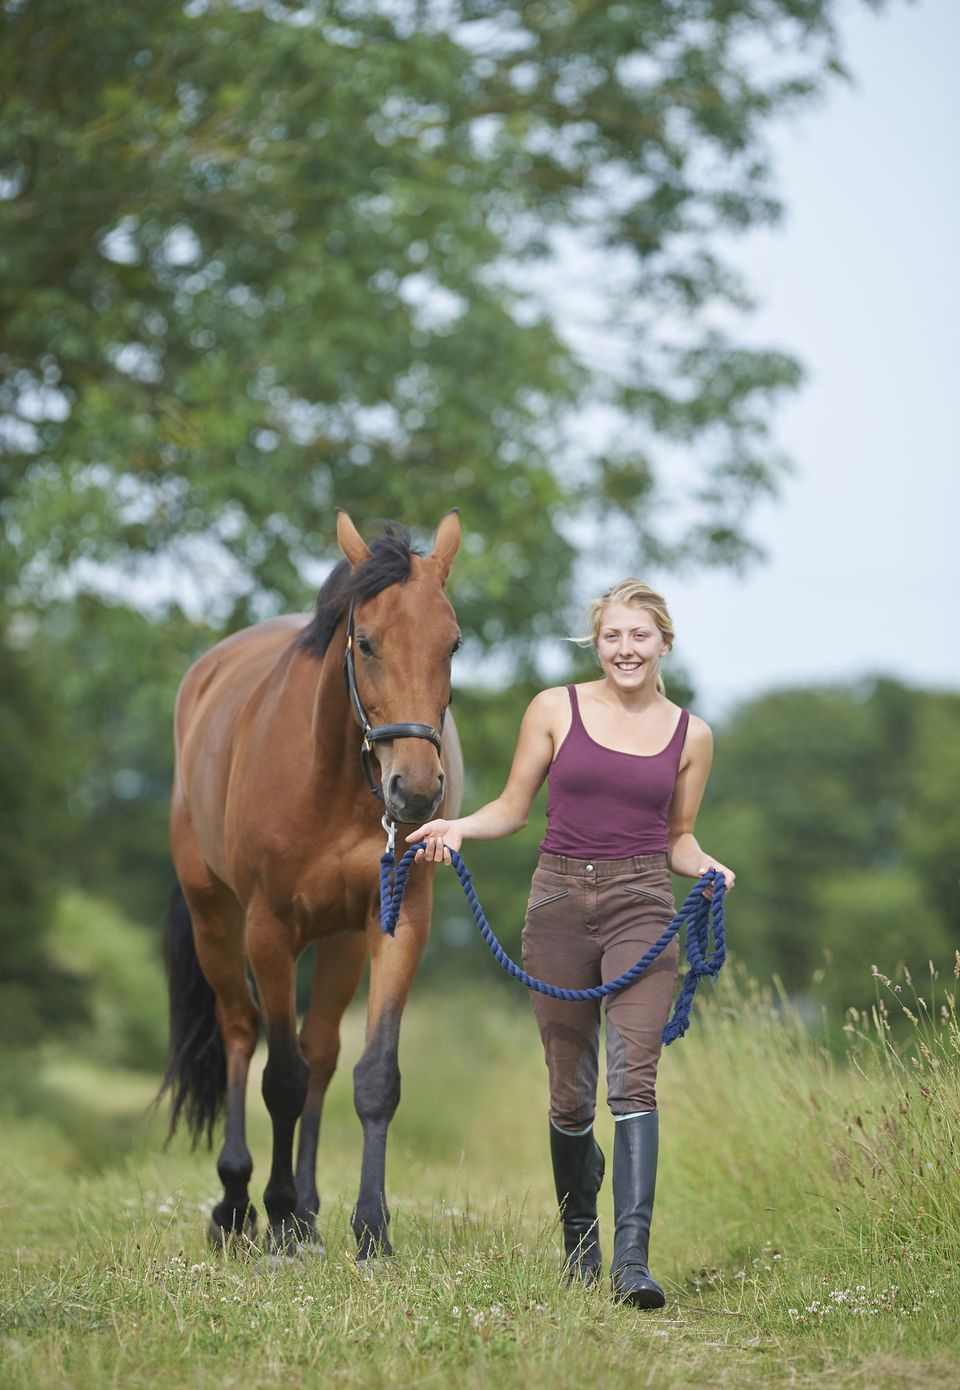 Young woman walking with horse in countryside.